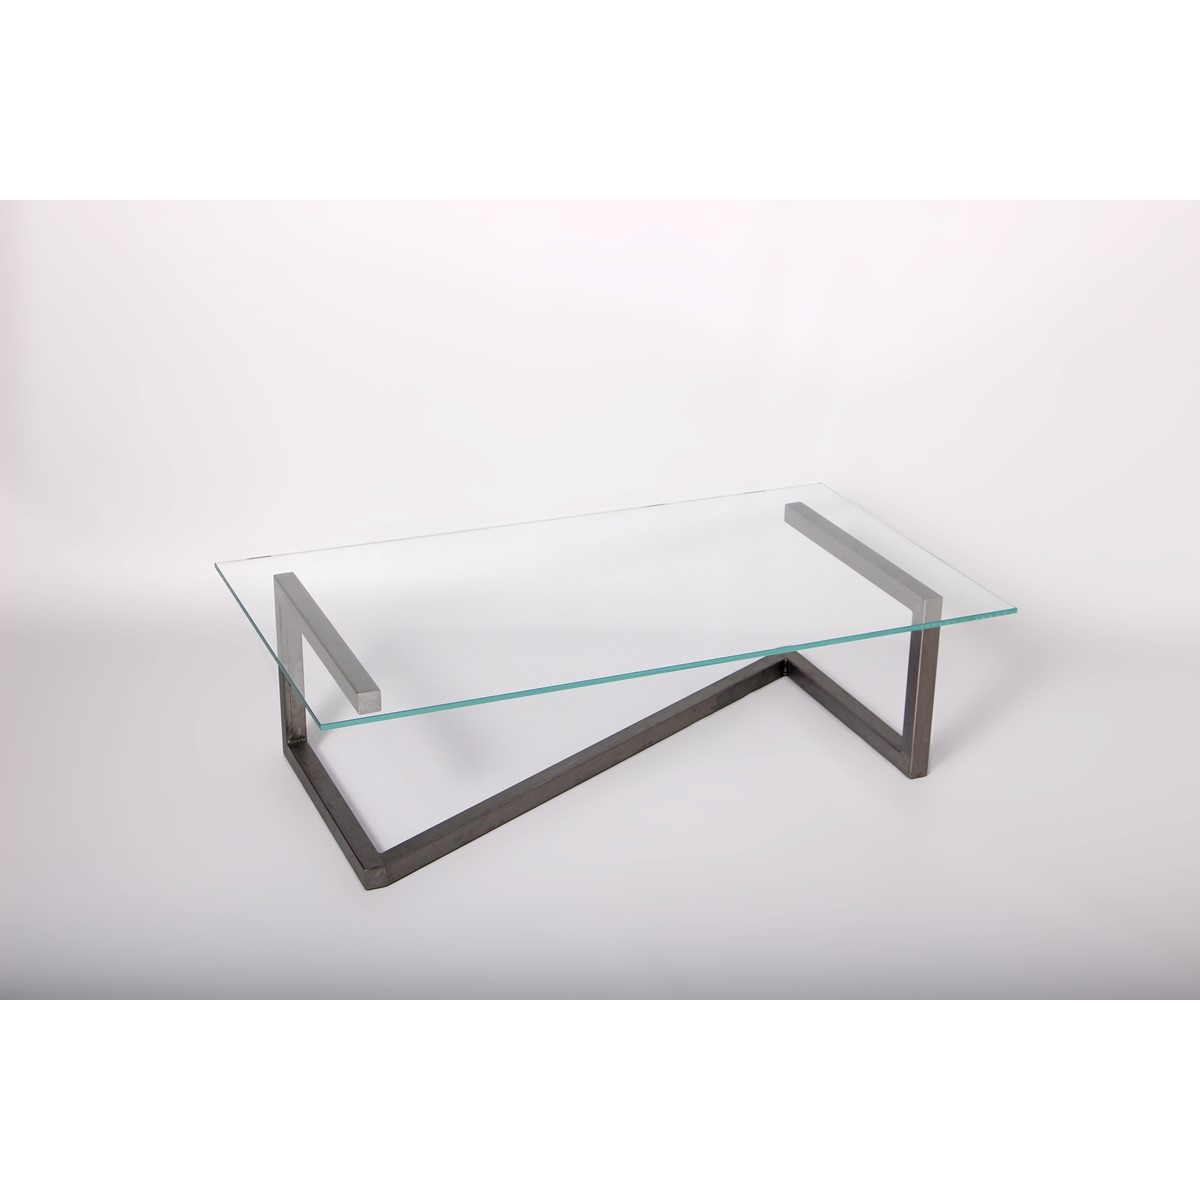 Customiser une table basse en verre - Tables basses design en verre ...